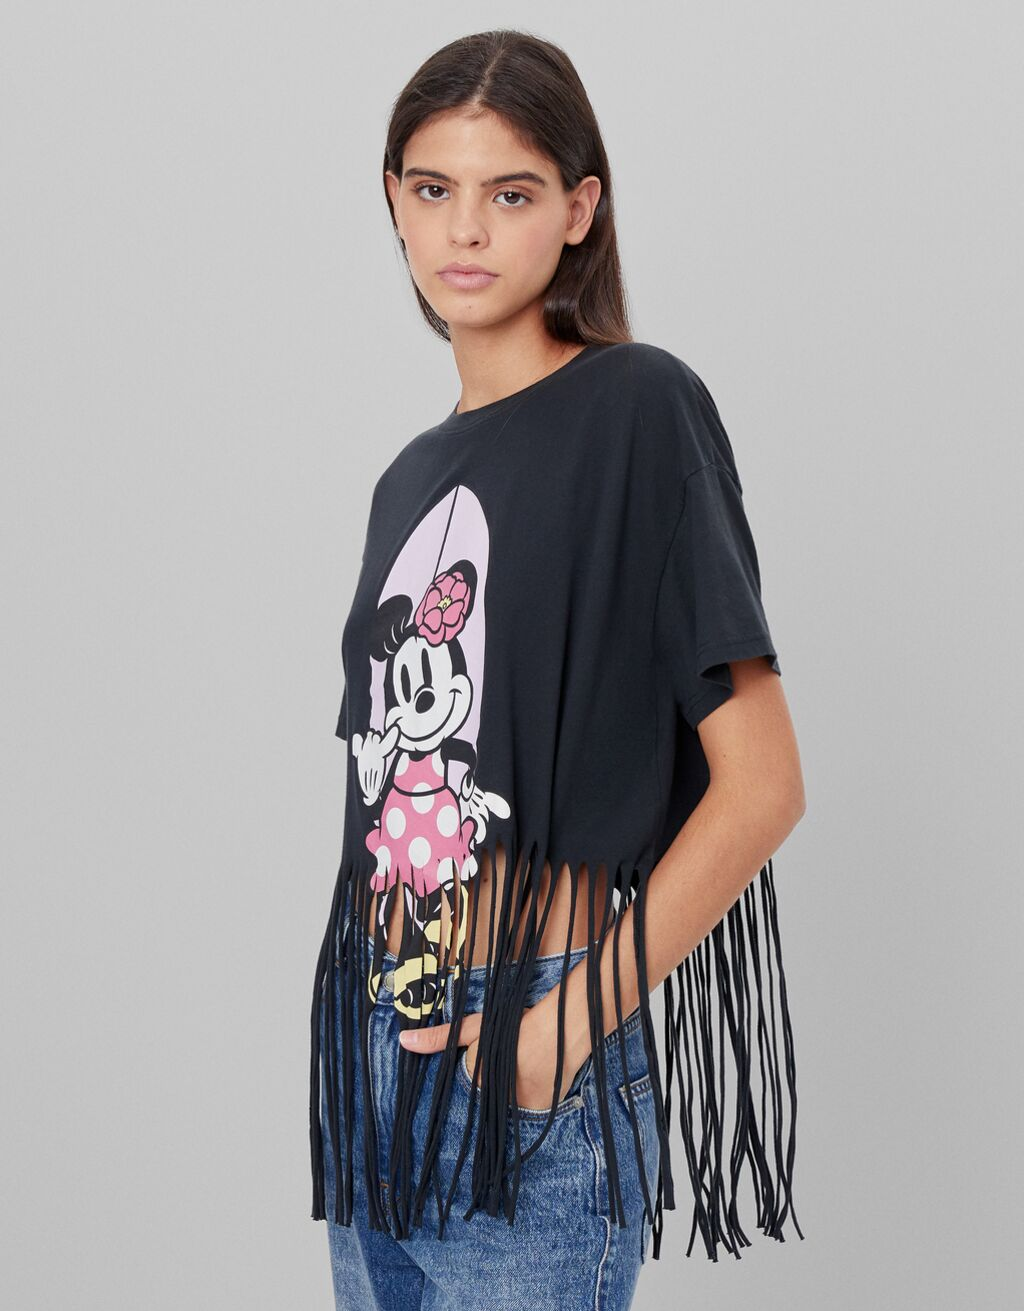 Camiseta Minnie flecos